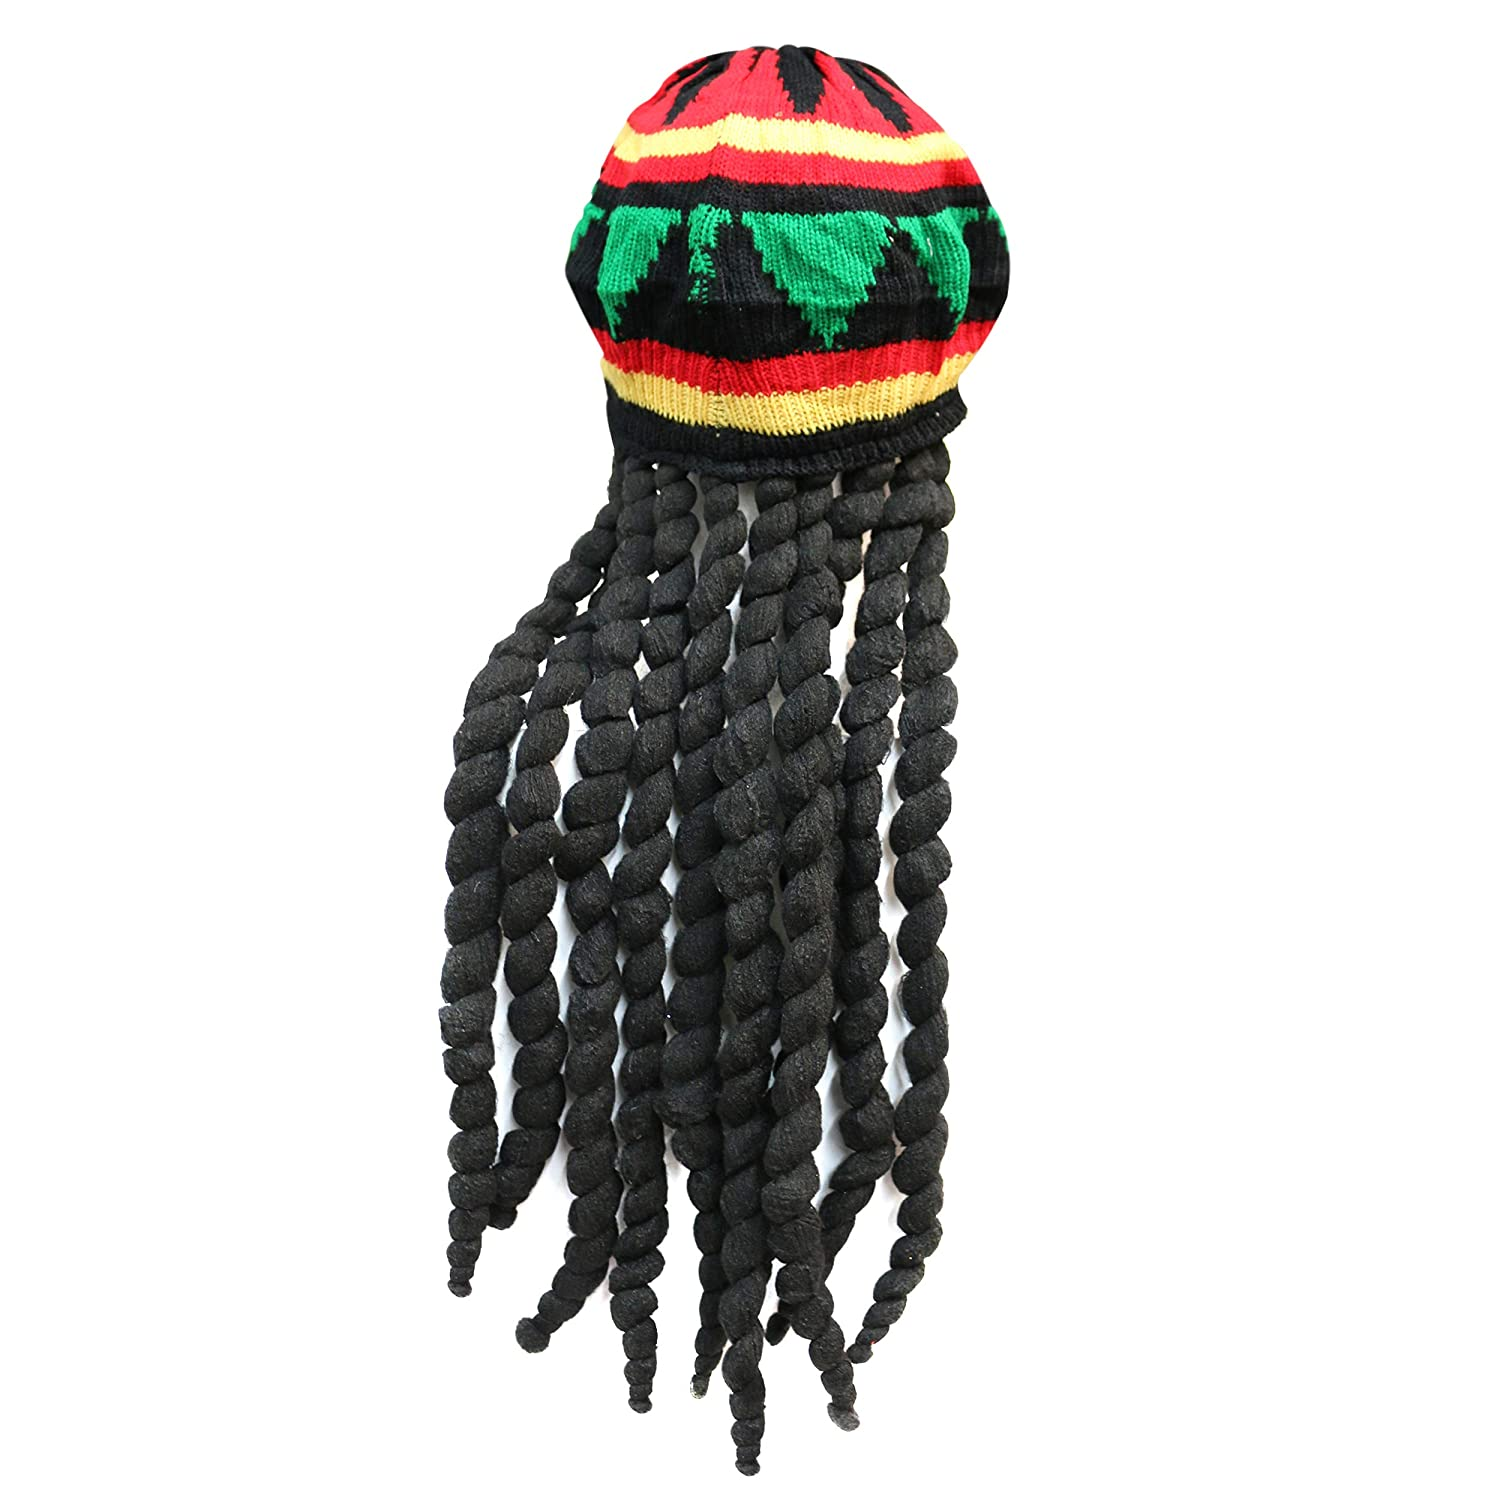 ADULT MENS JAMACIAN RASTA TAM HAT WITH DREADLOCKS COSTUME WIG CROCHET CAP HAIR